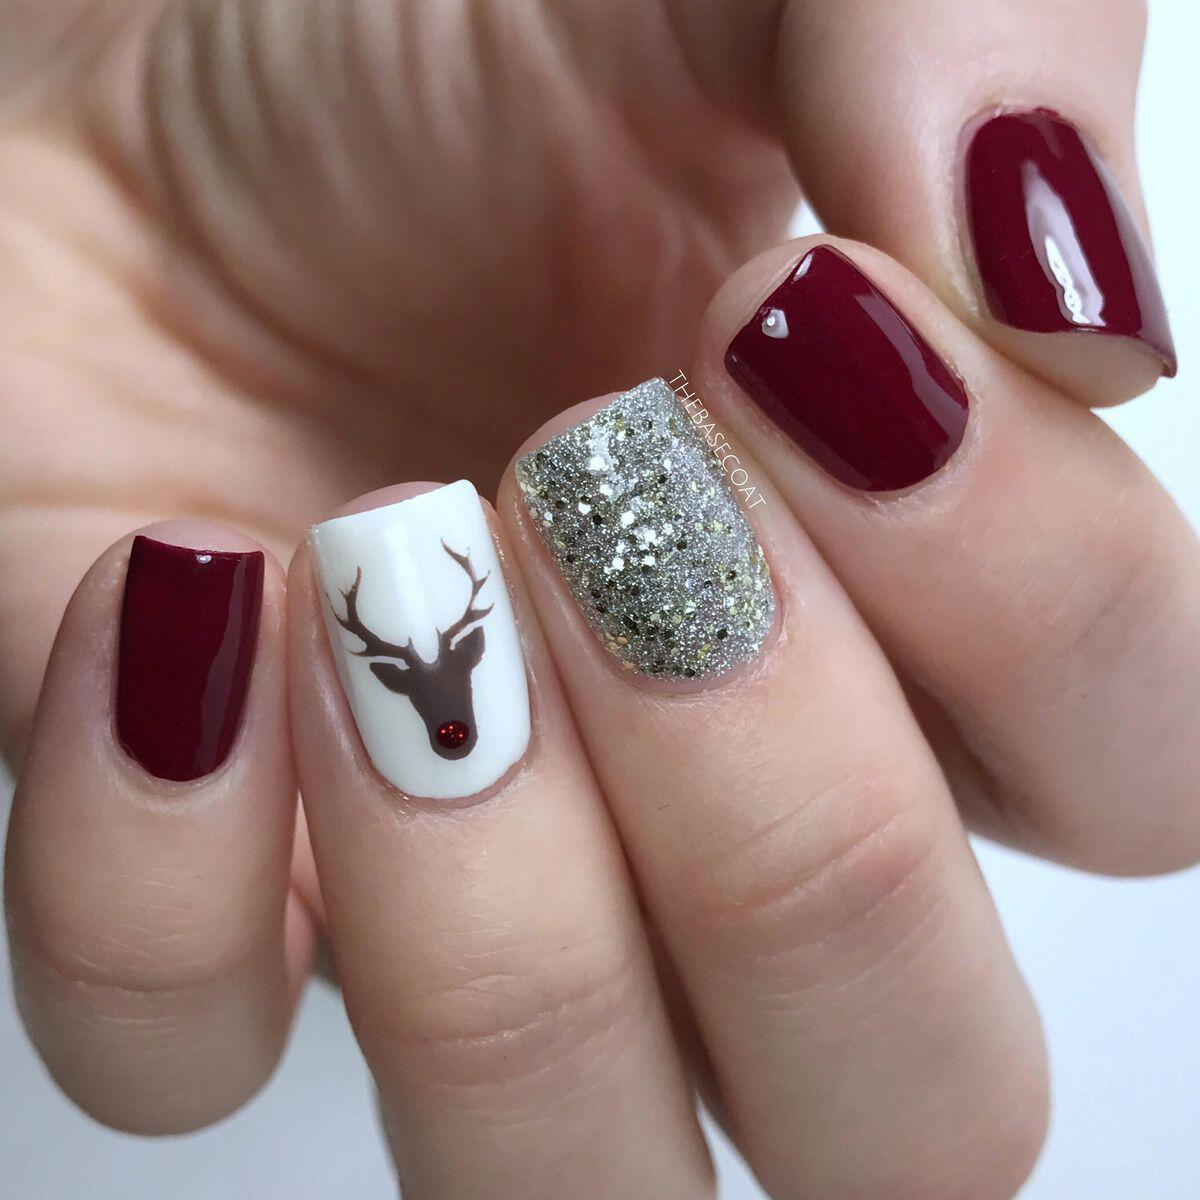 Christmas Diy Nail Ideas And More Of Our Manicures From: 25 Christmas Nails To Get Ideas From